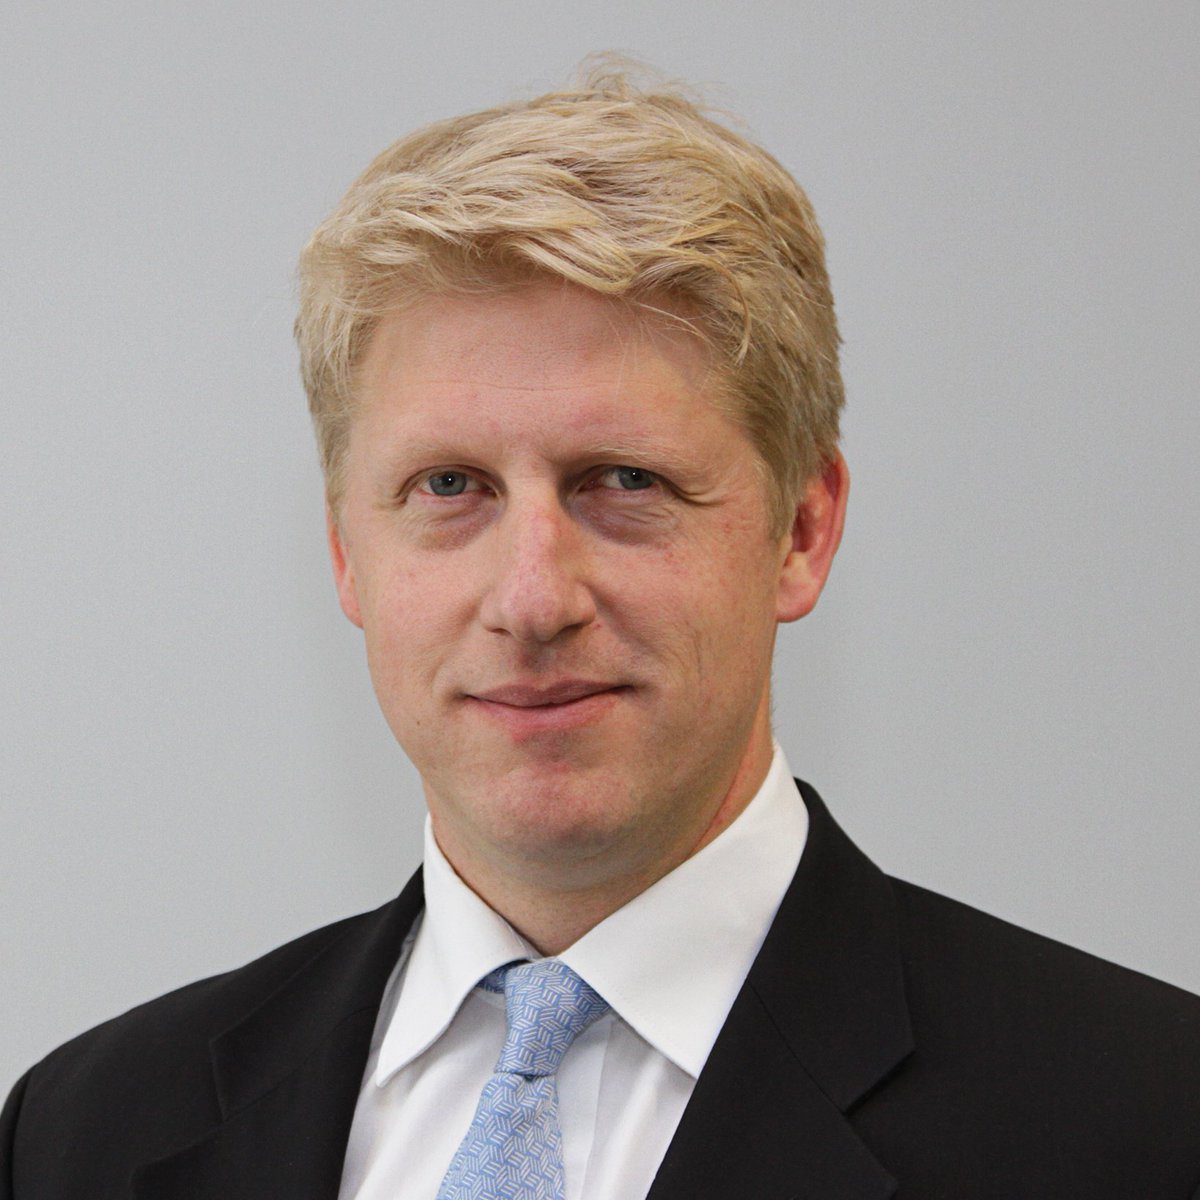 NEW: Why I amended the Higher Education and Research Bill - @JoJohnsonMP writes for Wonkhe https://t.co/YHzWZVF3fS https://t.co/8OEDb2ZHnx